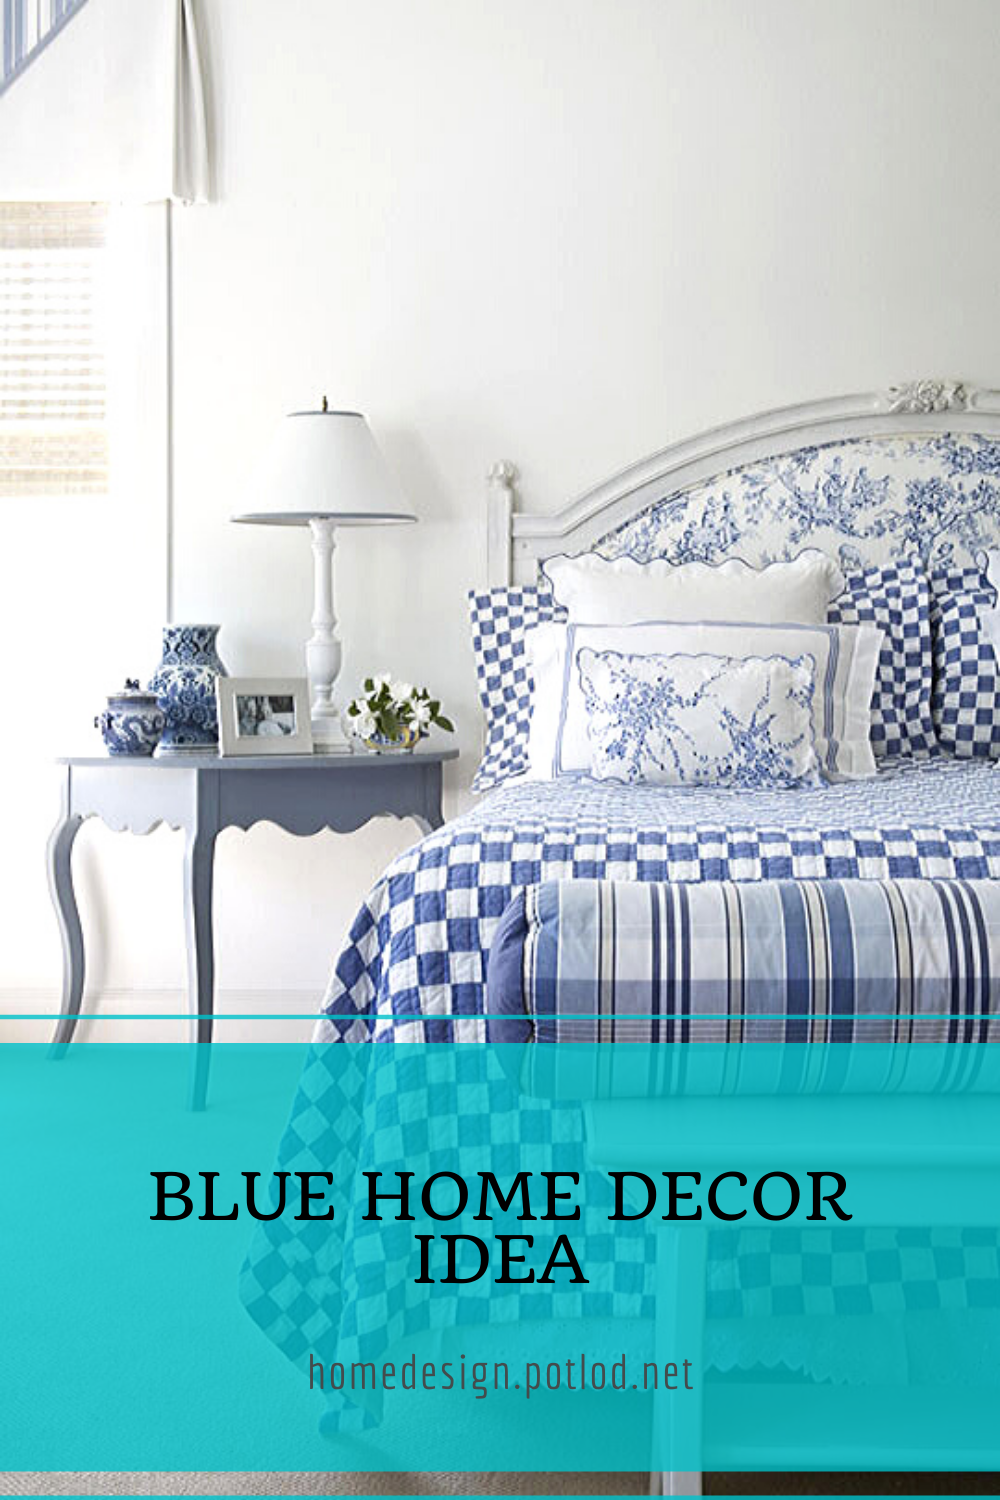 Looking for home Decor Inspiration? 💙 Layers of Blues in patterns and prints throughout this white kitchen open concept design. Located in Windermere, FL #FloridaInteriors #TownhomeLiving #bluedecor